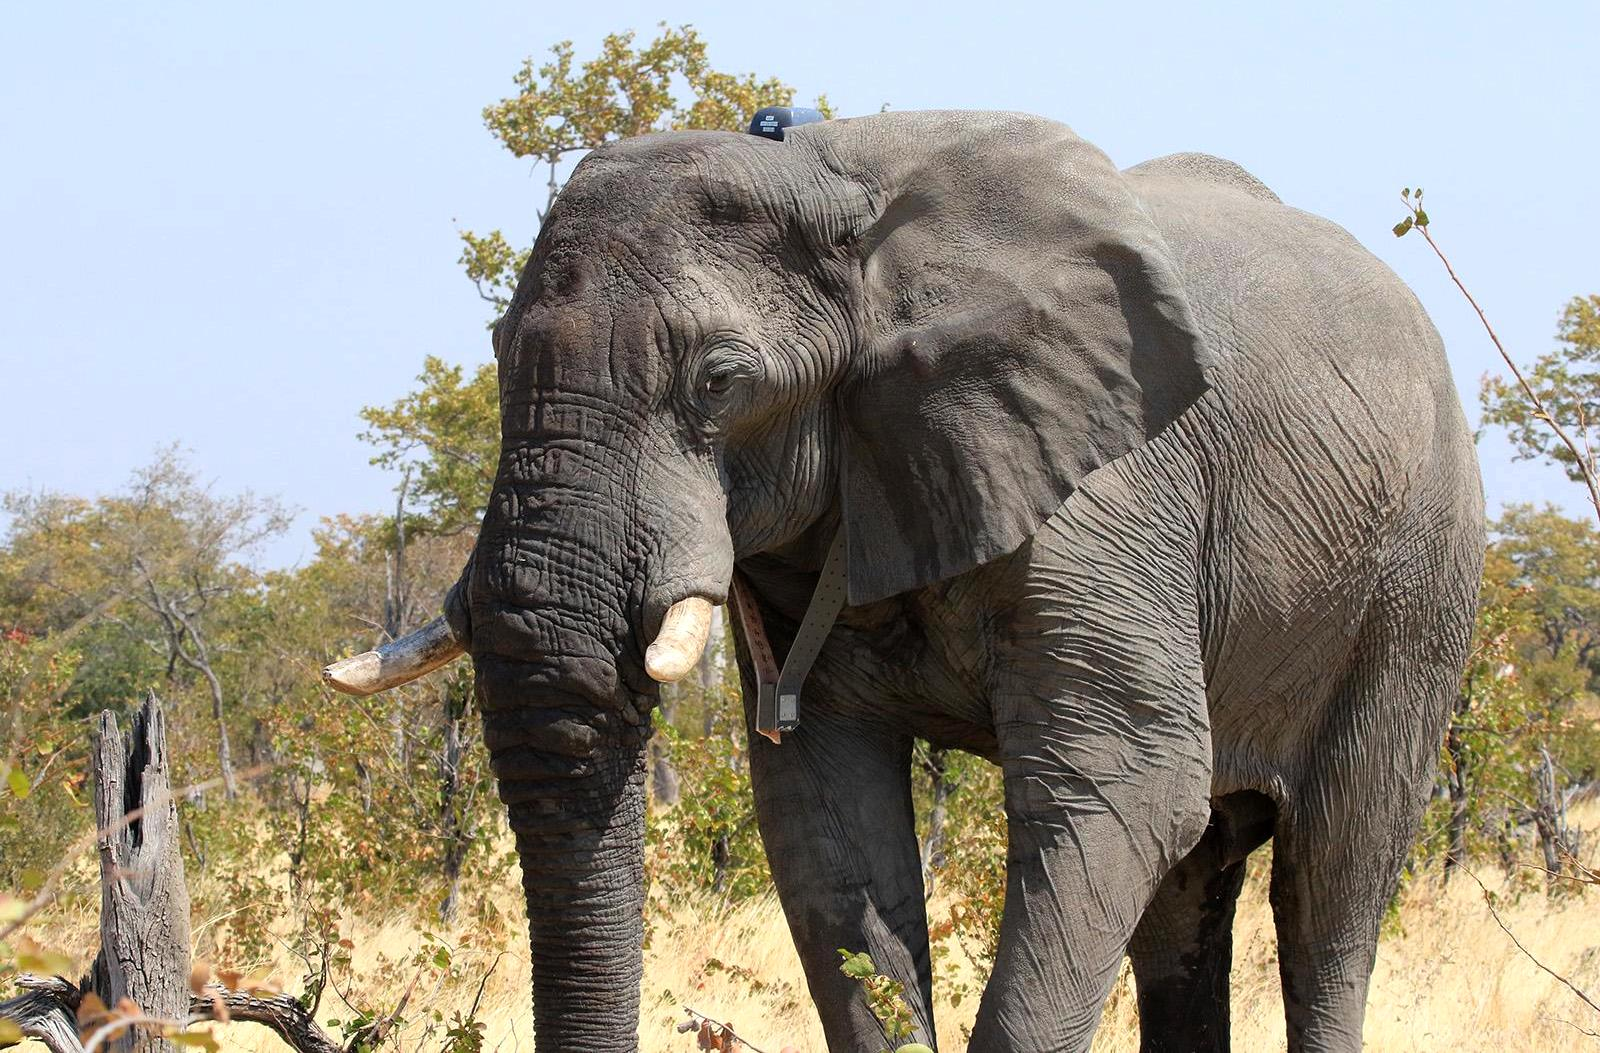 An elephant wearing a satellite tracking tag on a collar. Tags send the animal's location every hour or other set time period to a satellite, which transmits the information to the researcher.